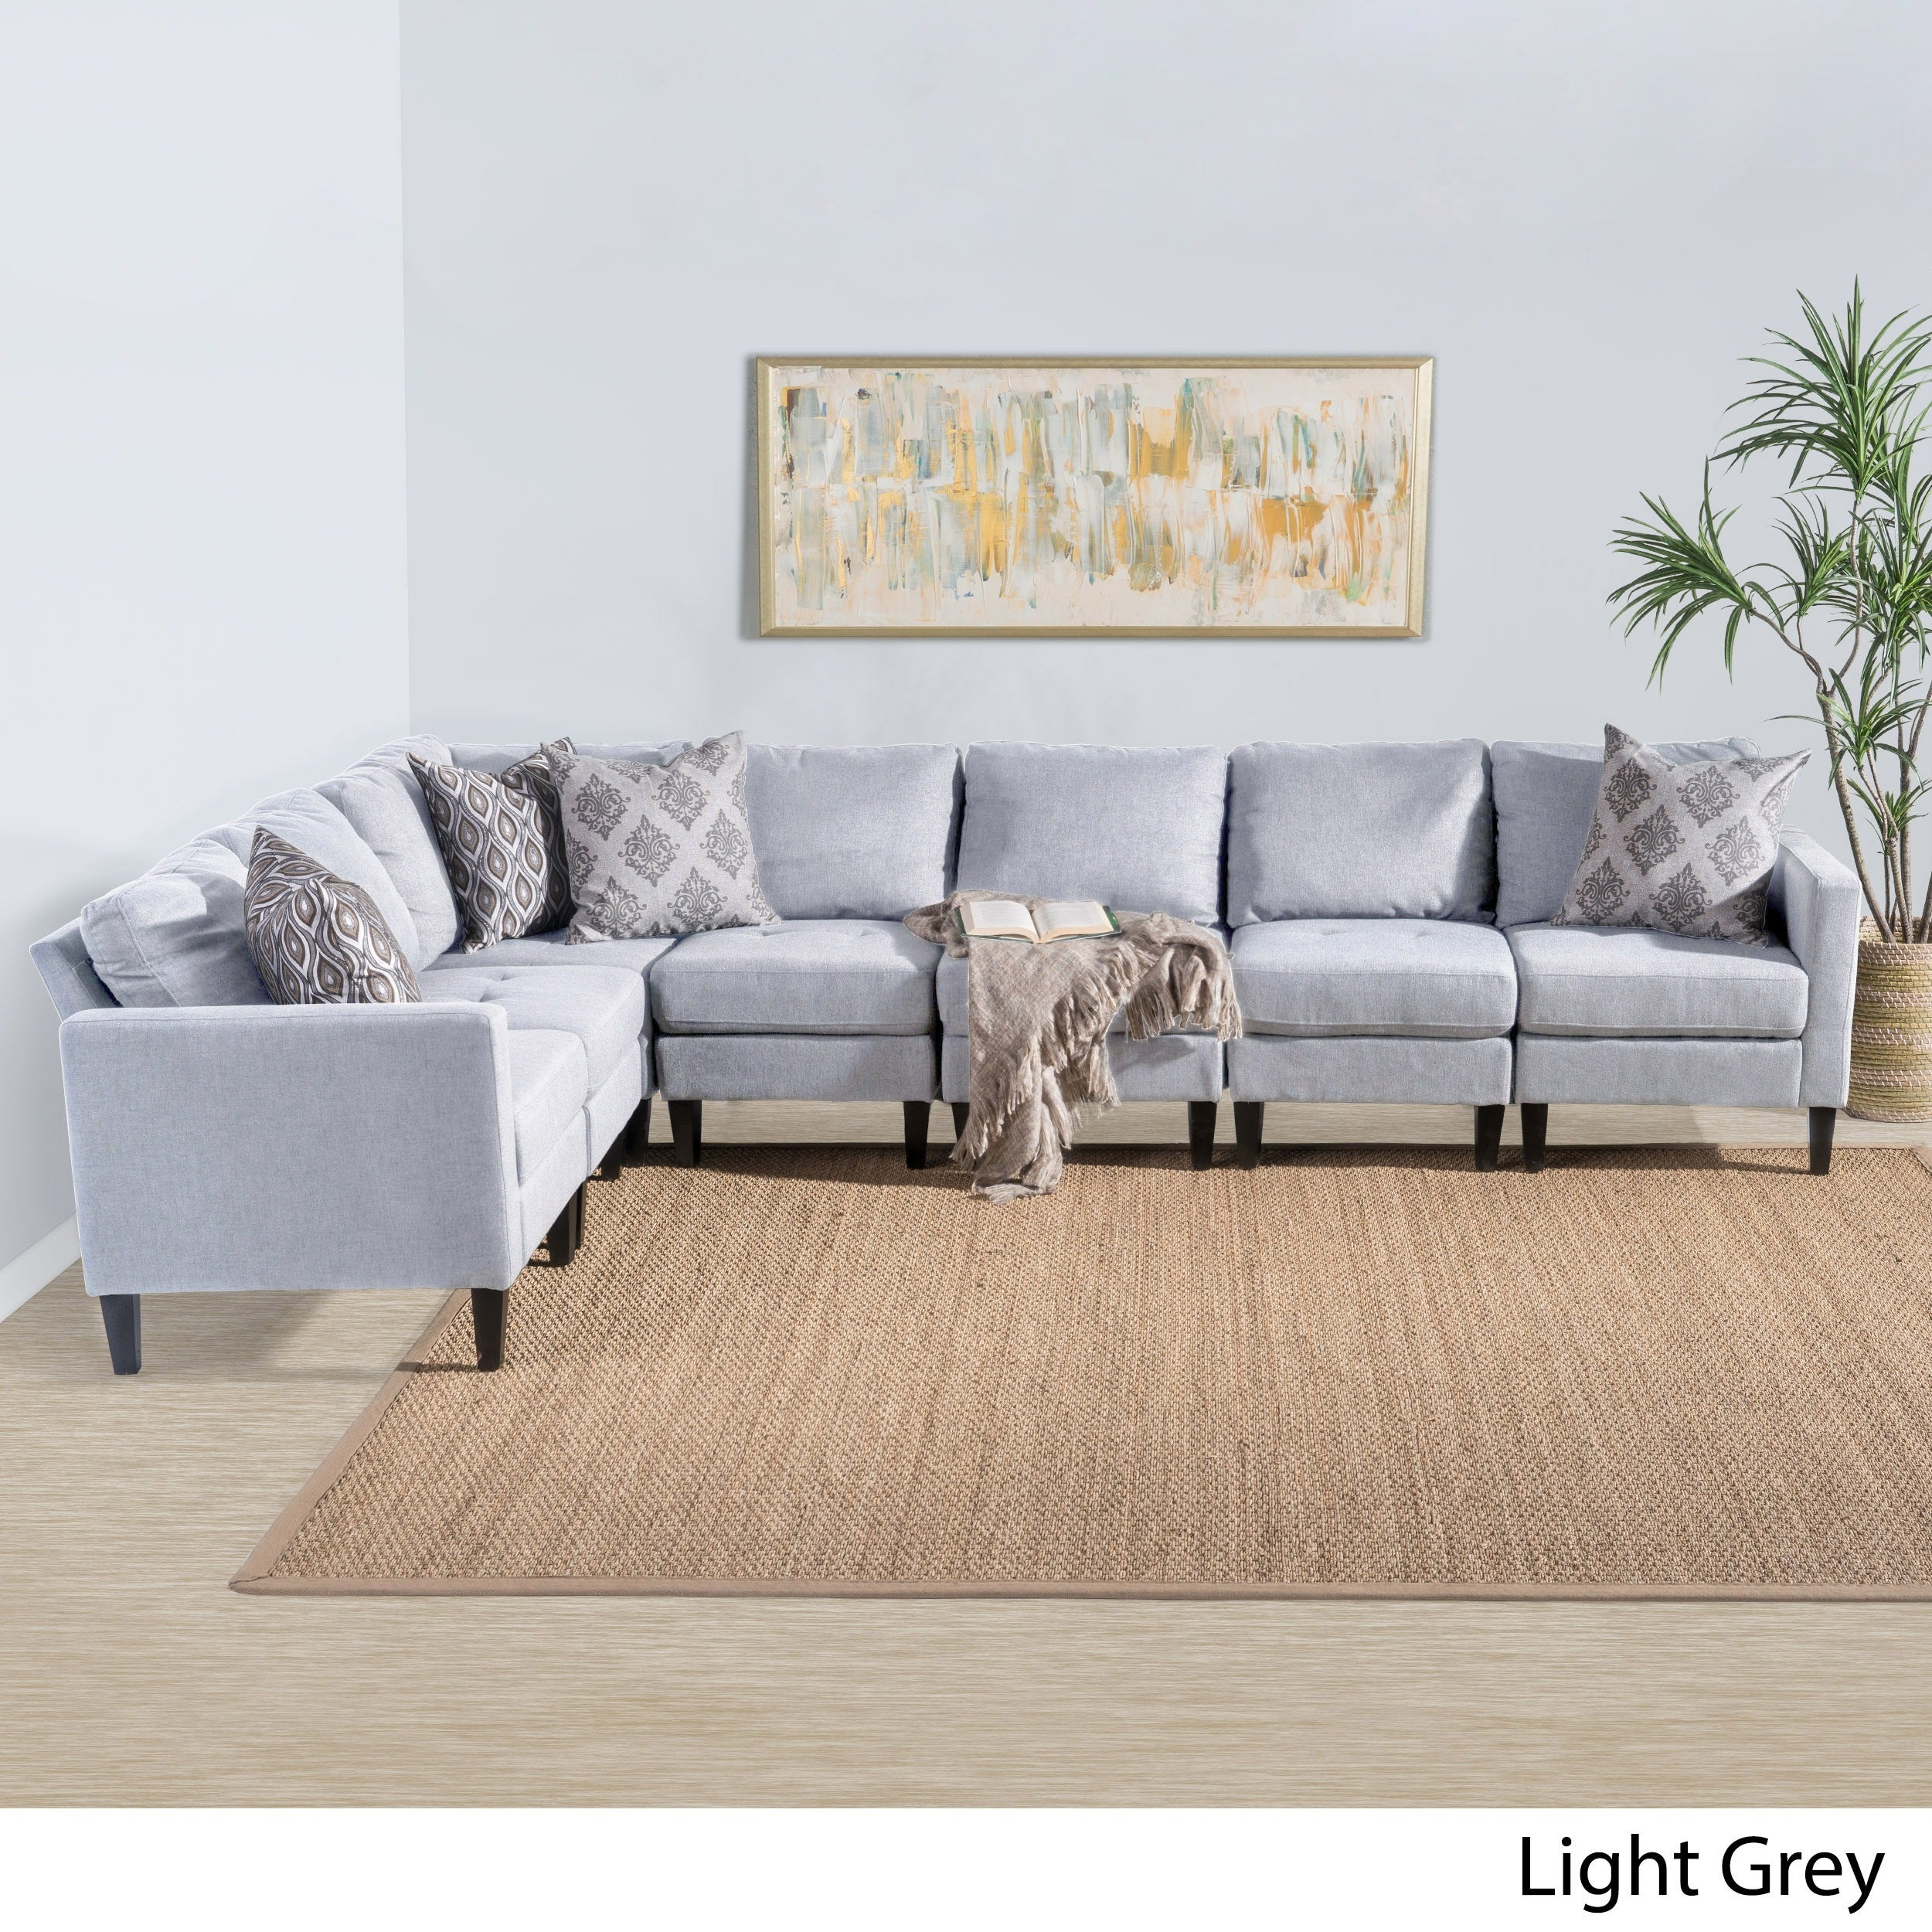 Shop zahra 7 piece fabric sectional sofa set by christopher knight home on sale free shipping today overstock com 15004909